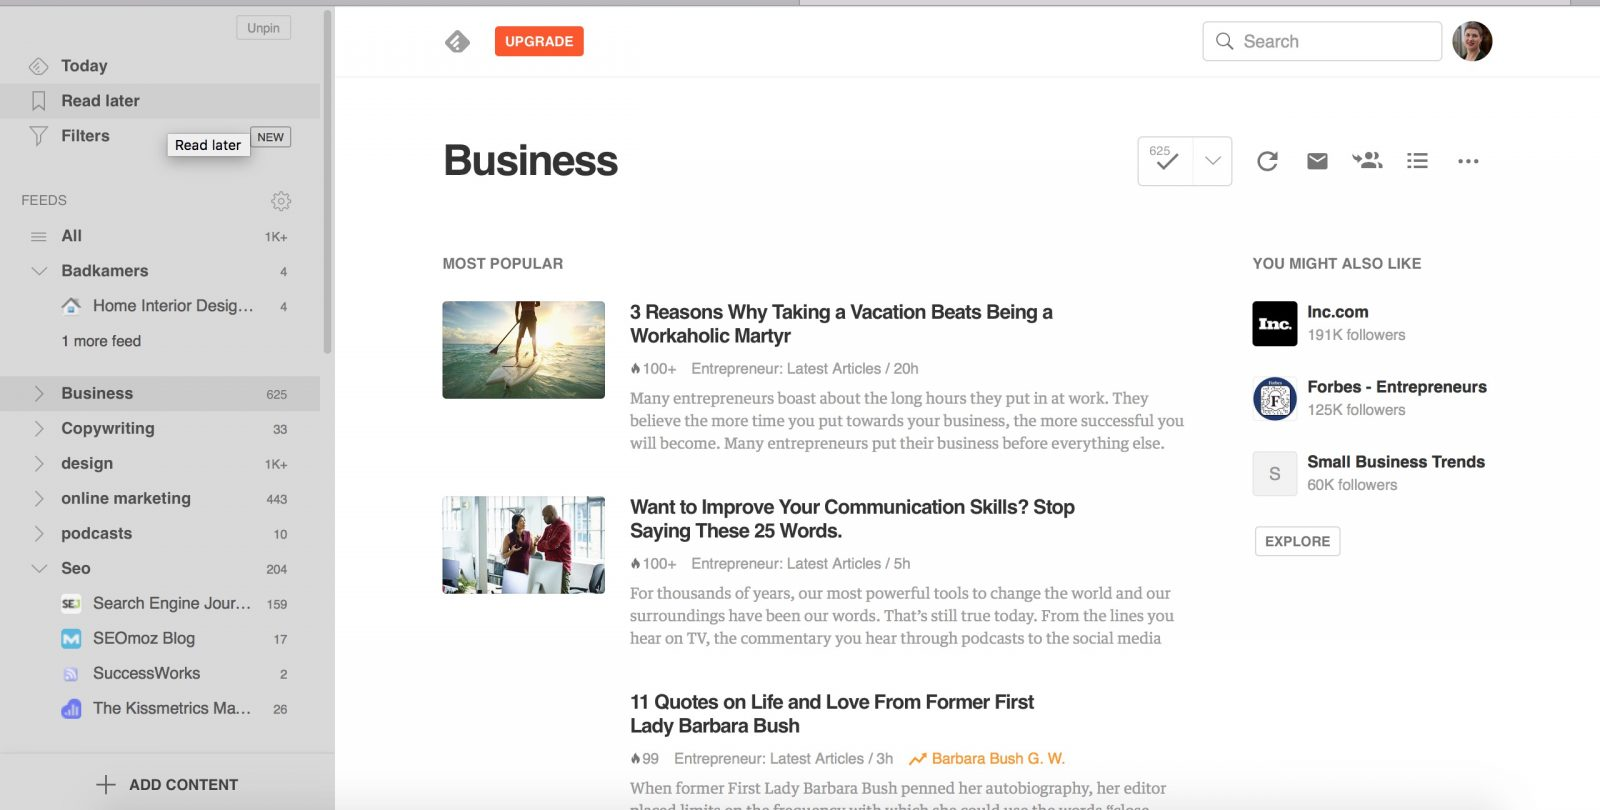 Inspiratie voor business blog - Feedly